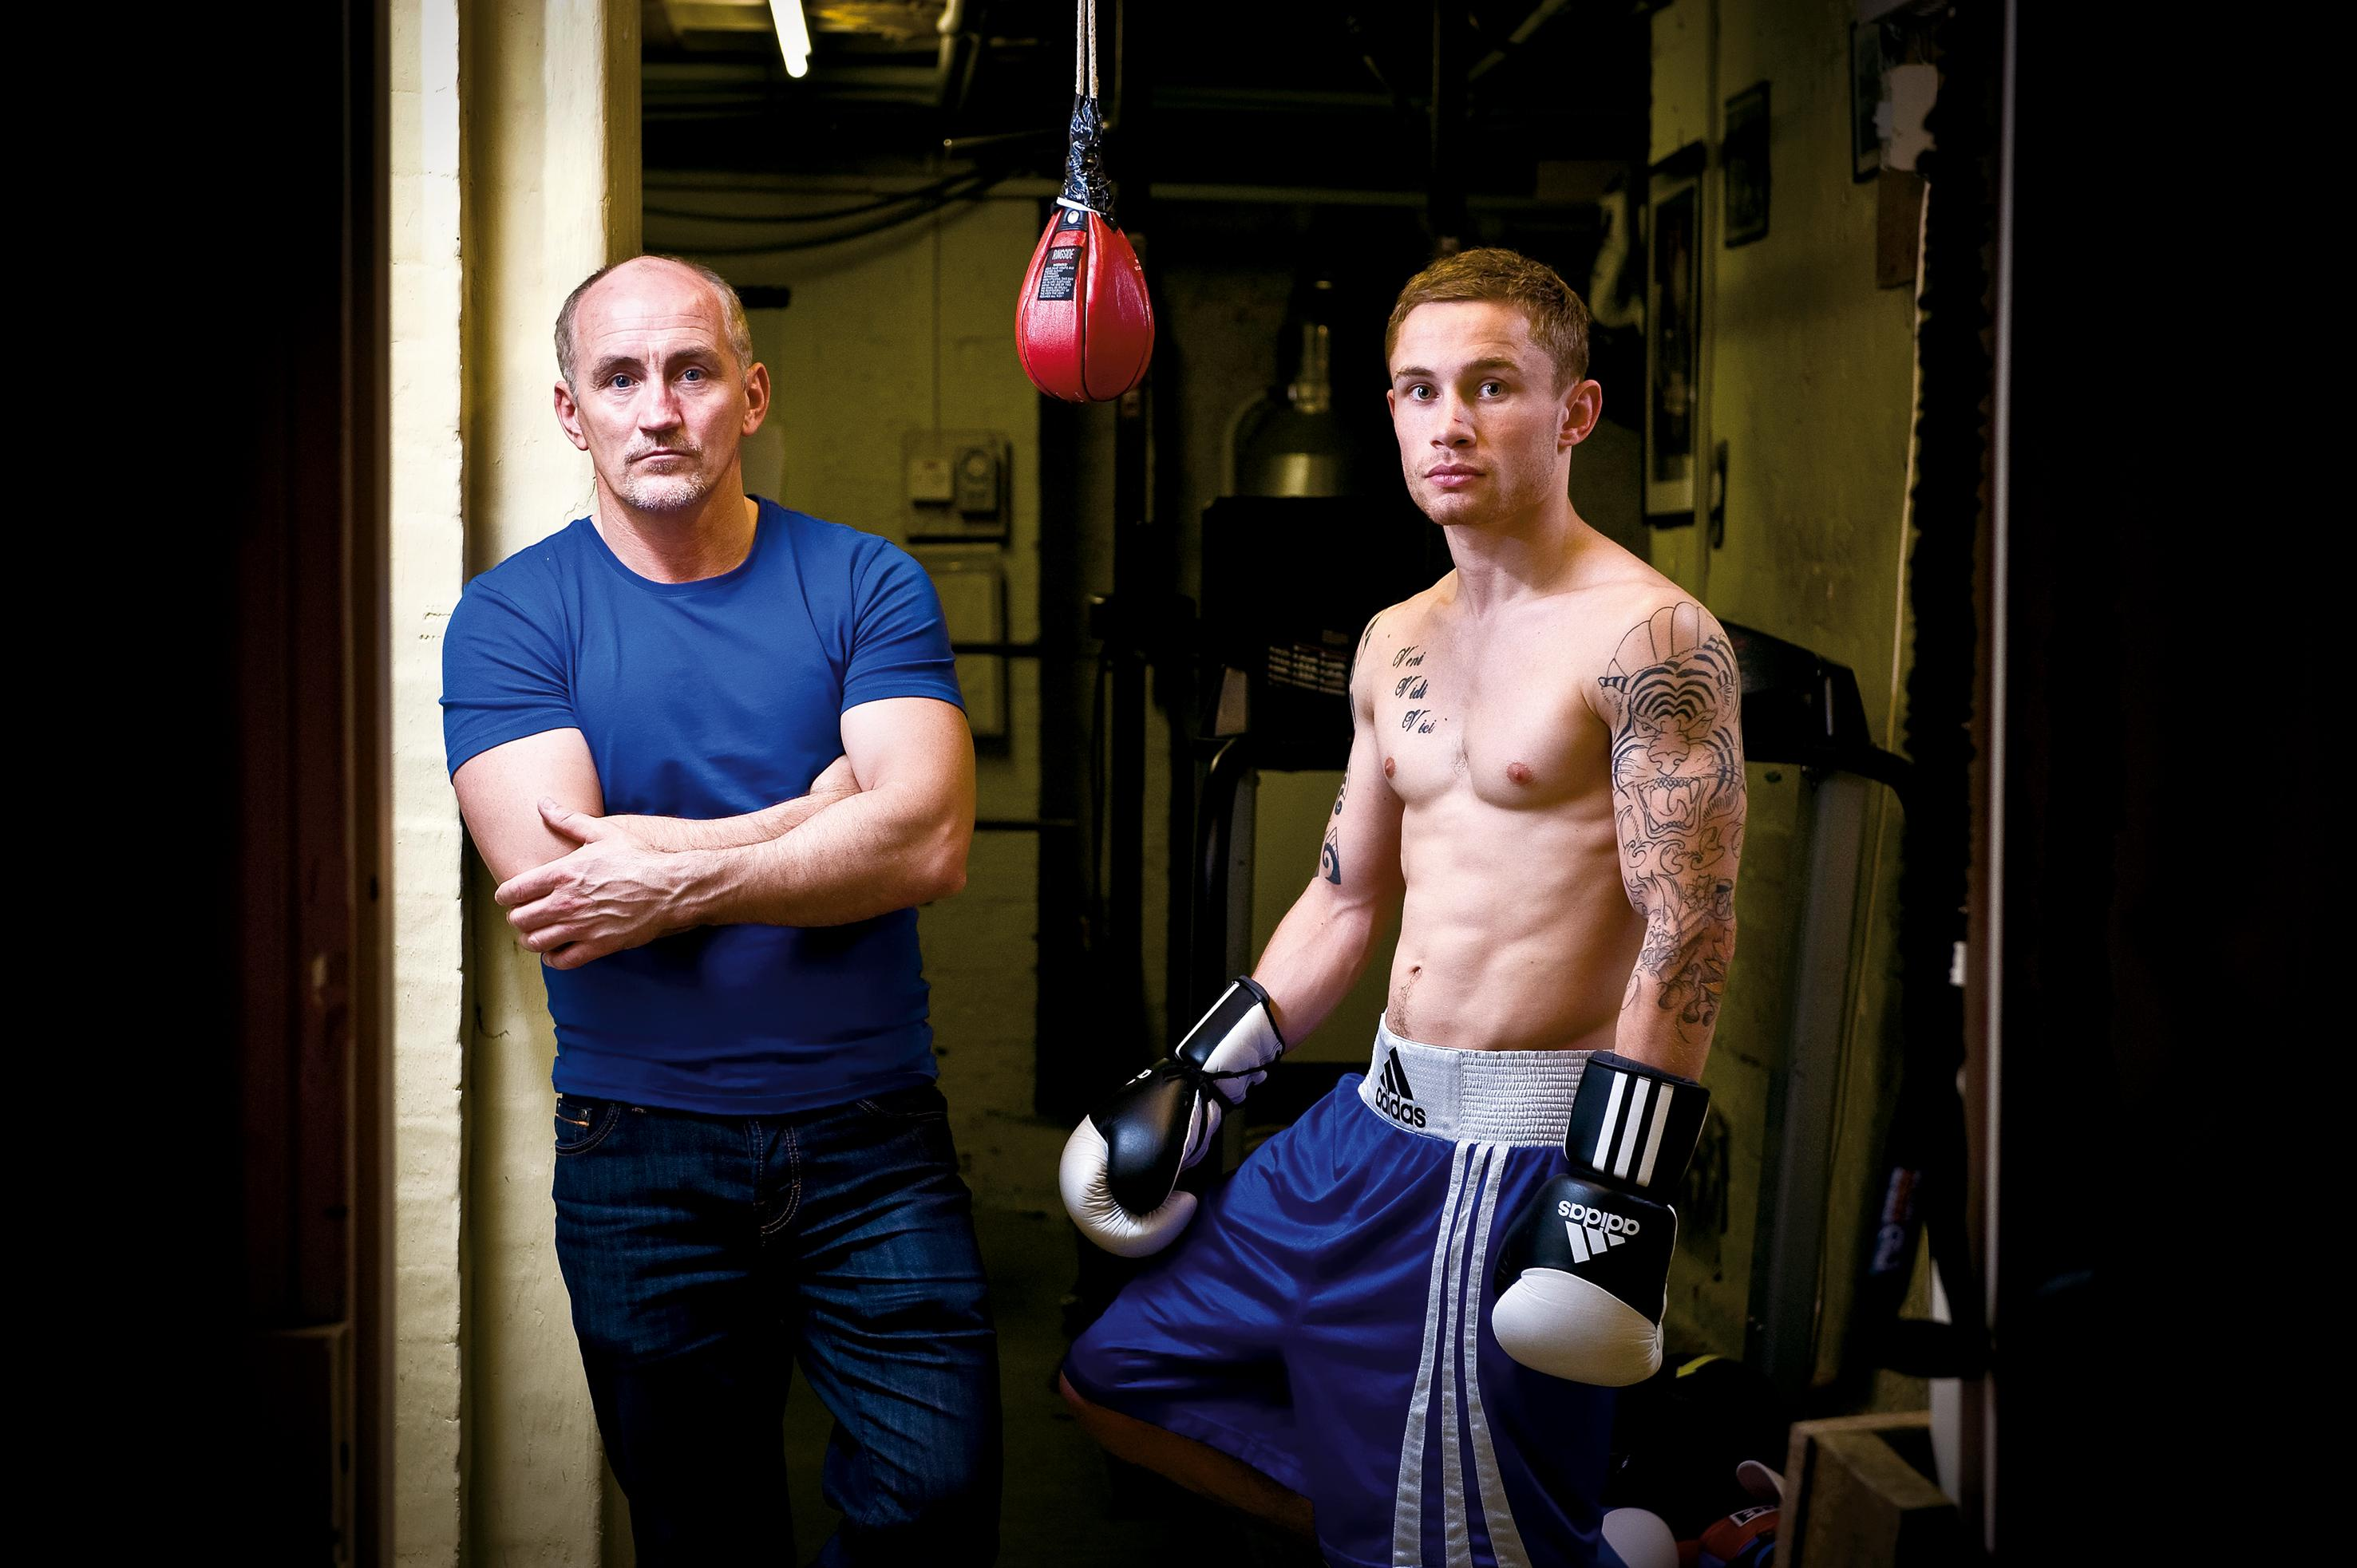 Carl Frampton and Cyclone Promotions are both taking each other to court